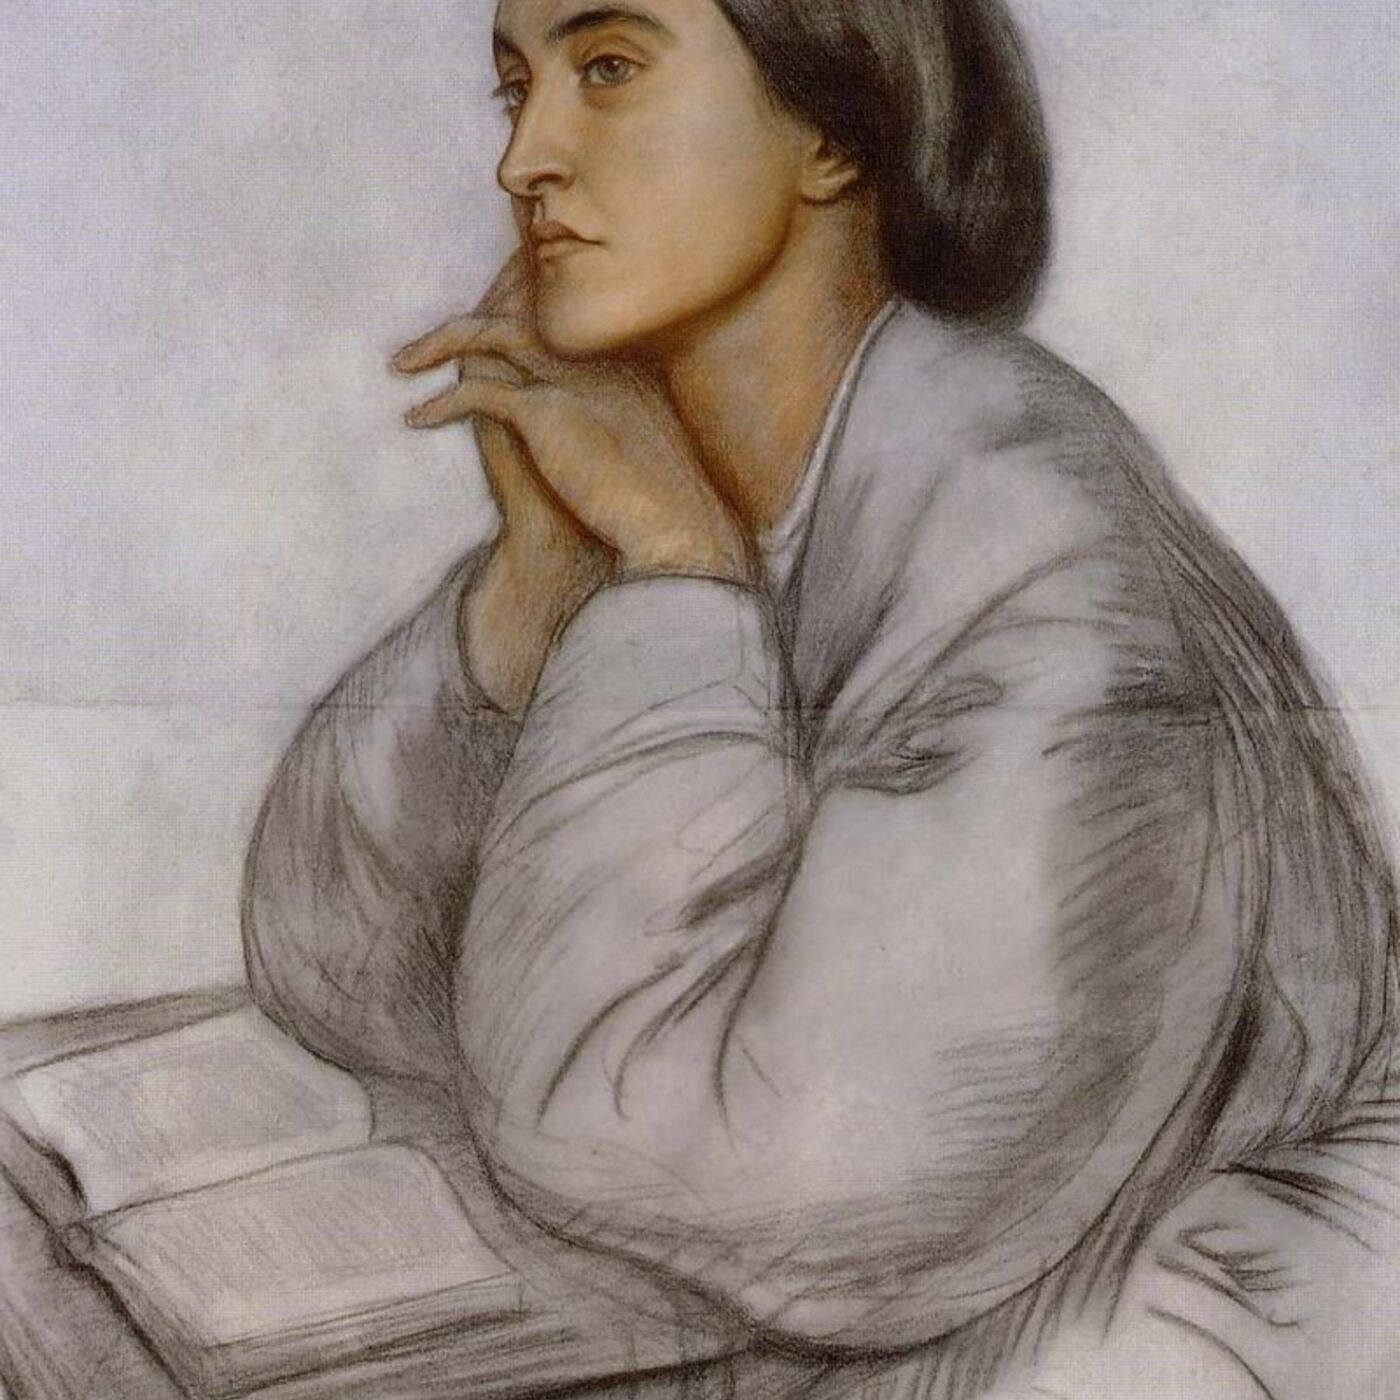 Christina Rossetti Heart's Chill Between 'Aloof' (from The Thread of Life) In an Artist's Studio